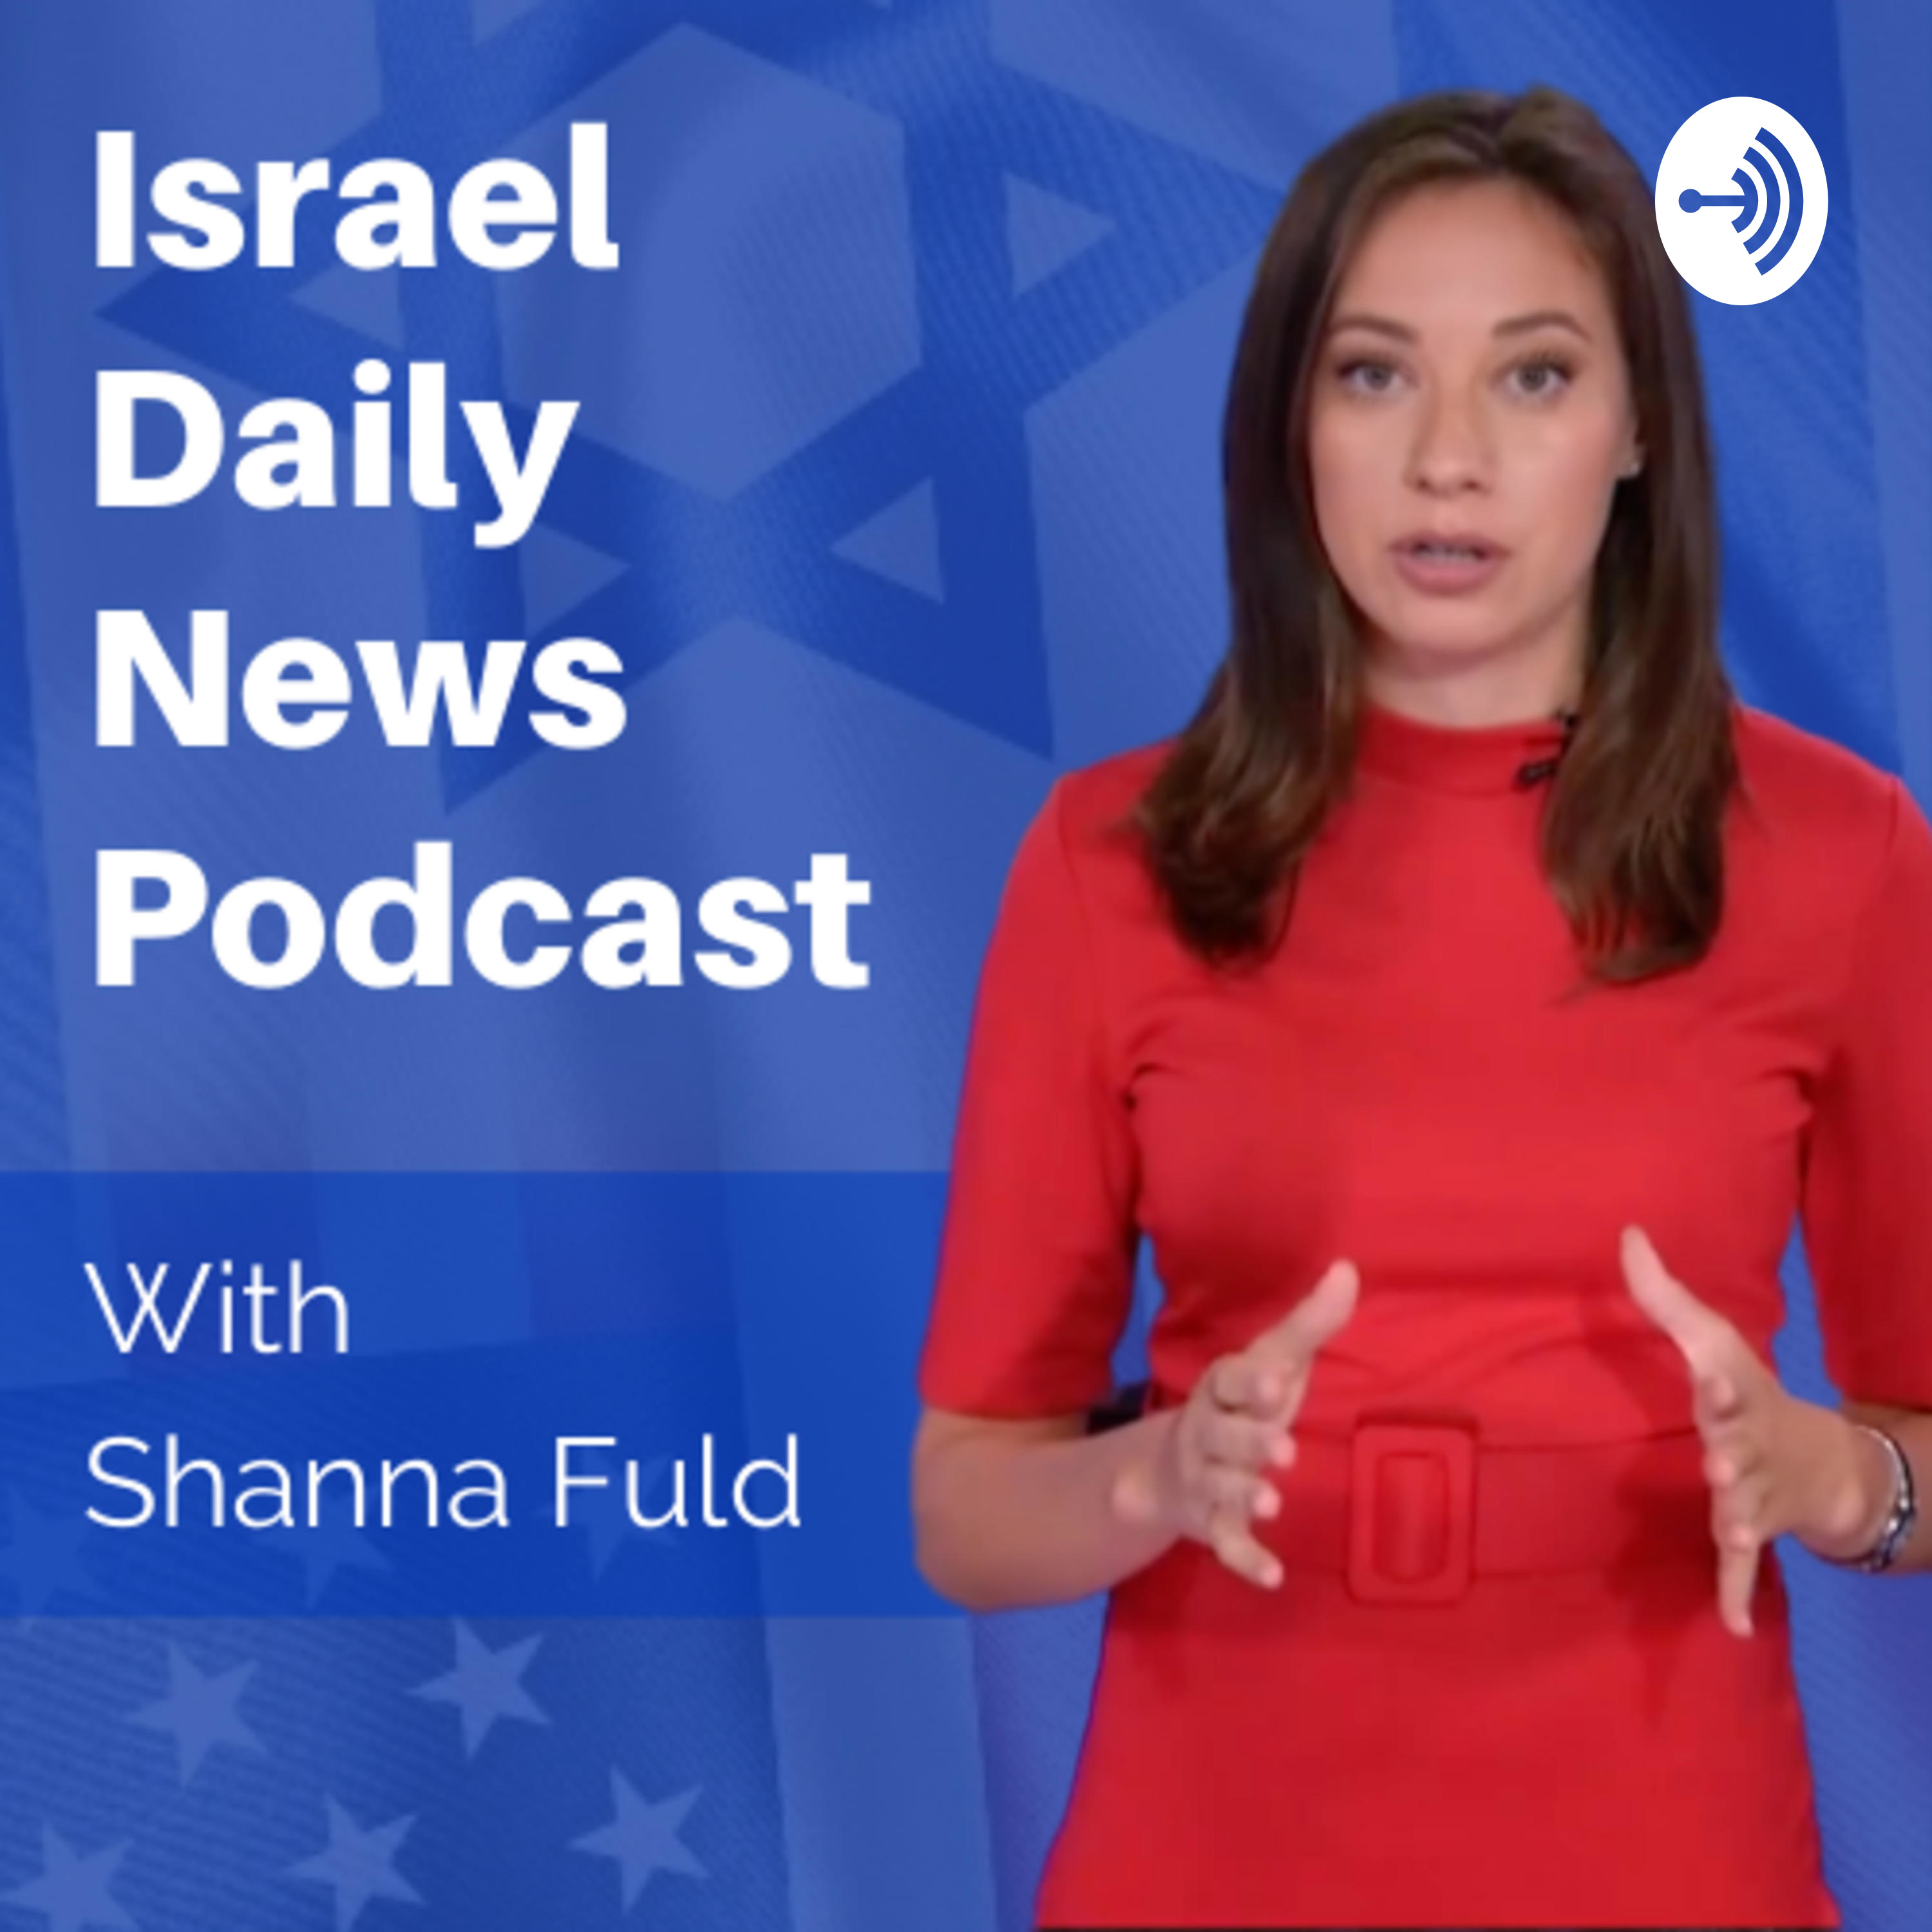 A highlight from Israel Daily News Podcast; Tues. Oct. 19, 2021